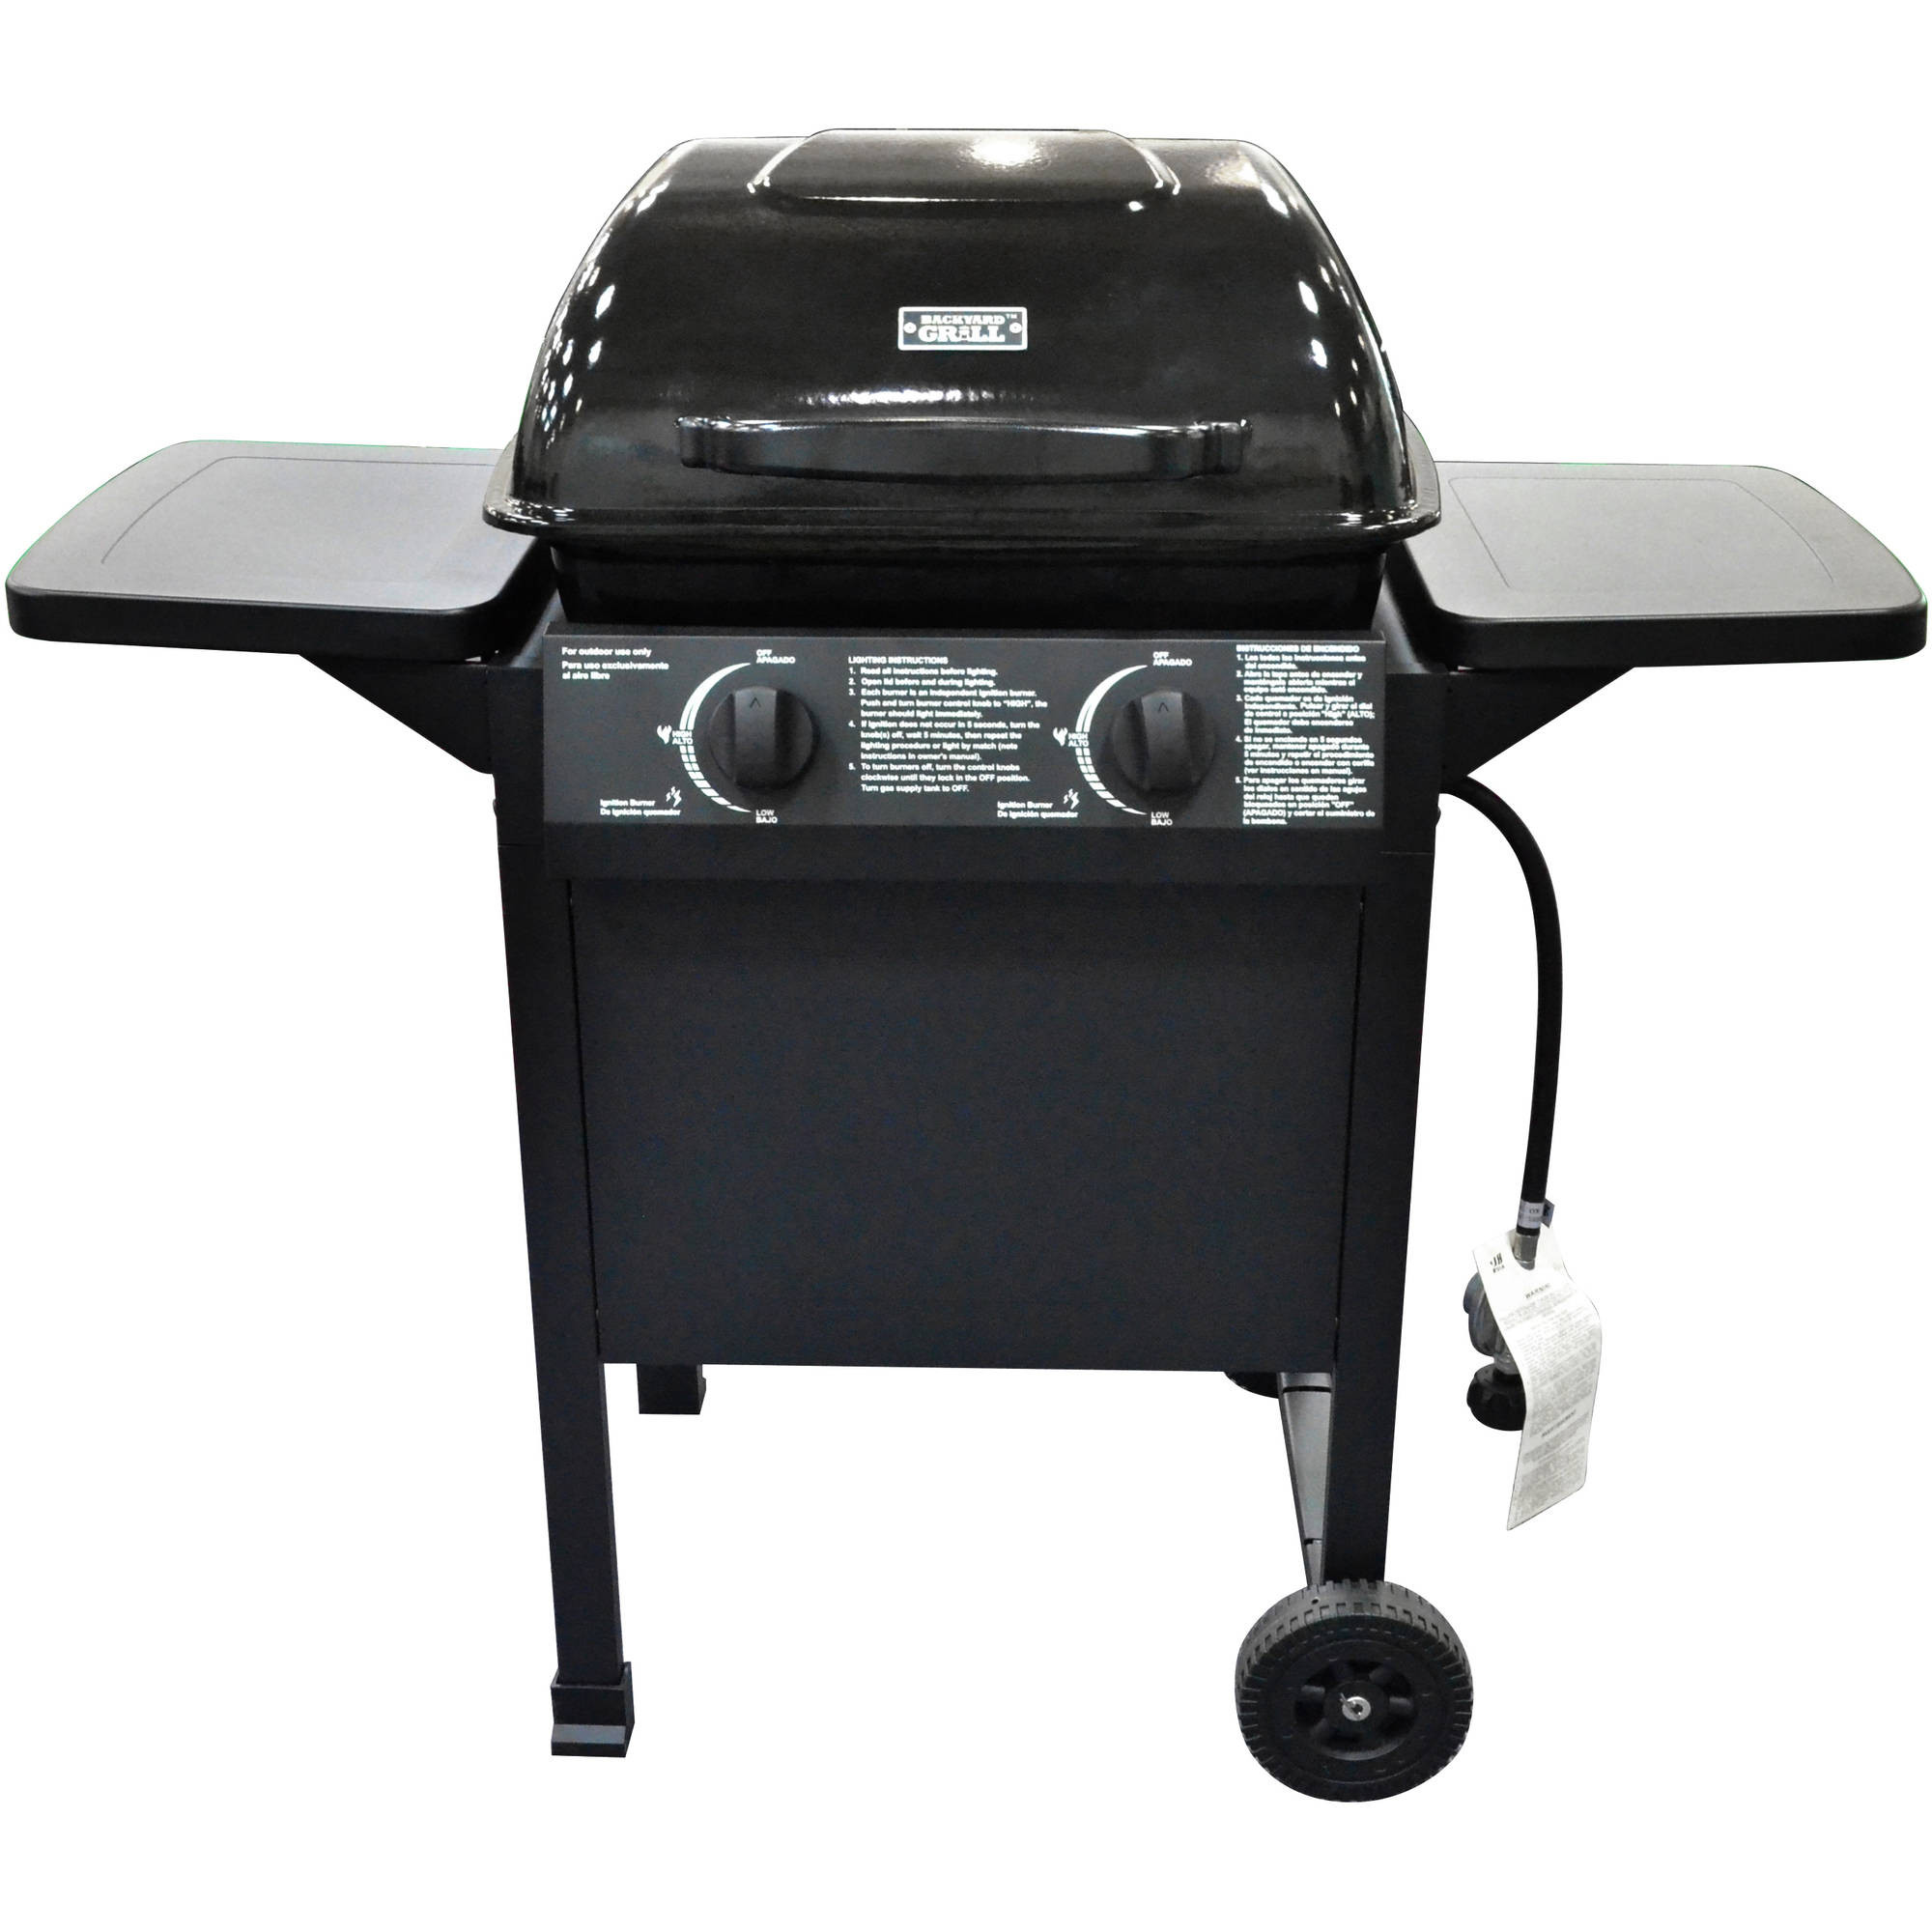 Backyard Grill 2-Burner Cart Gas Grill